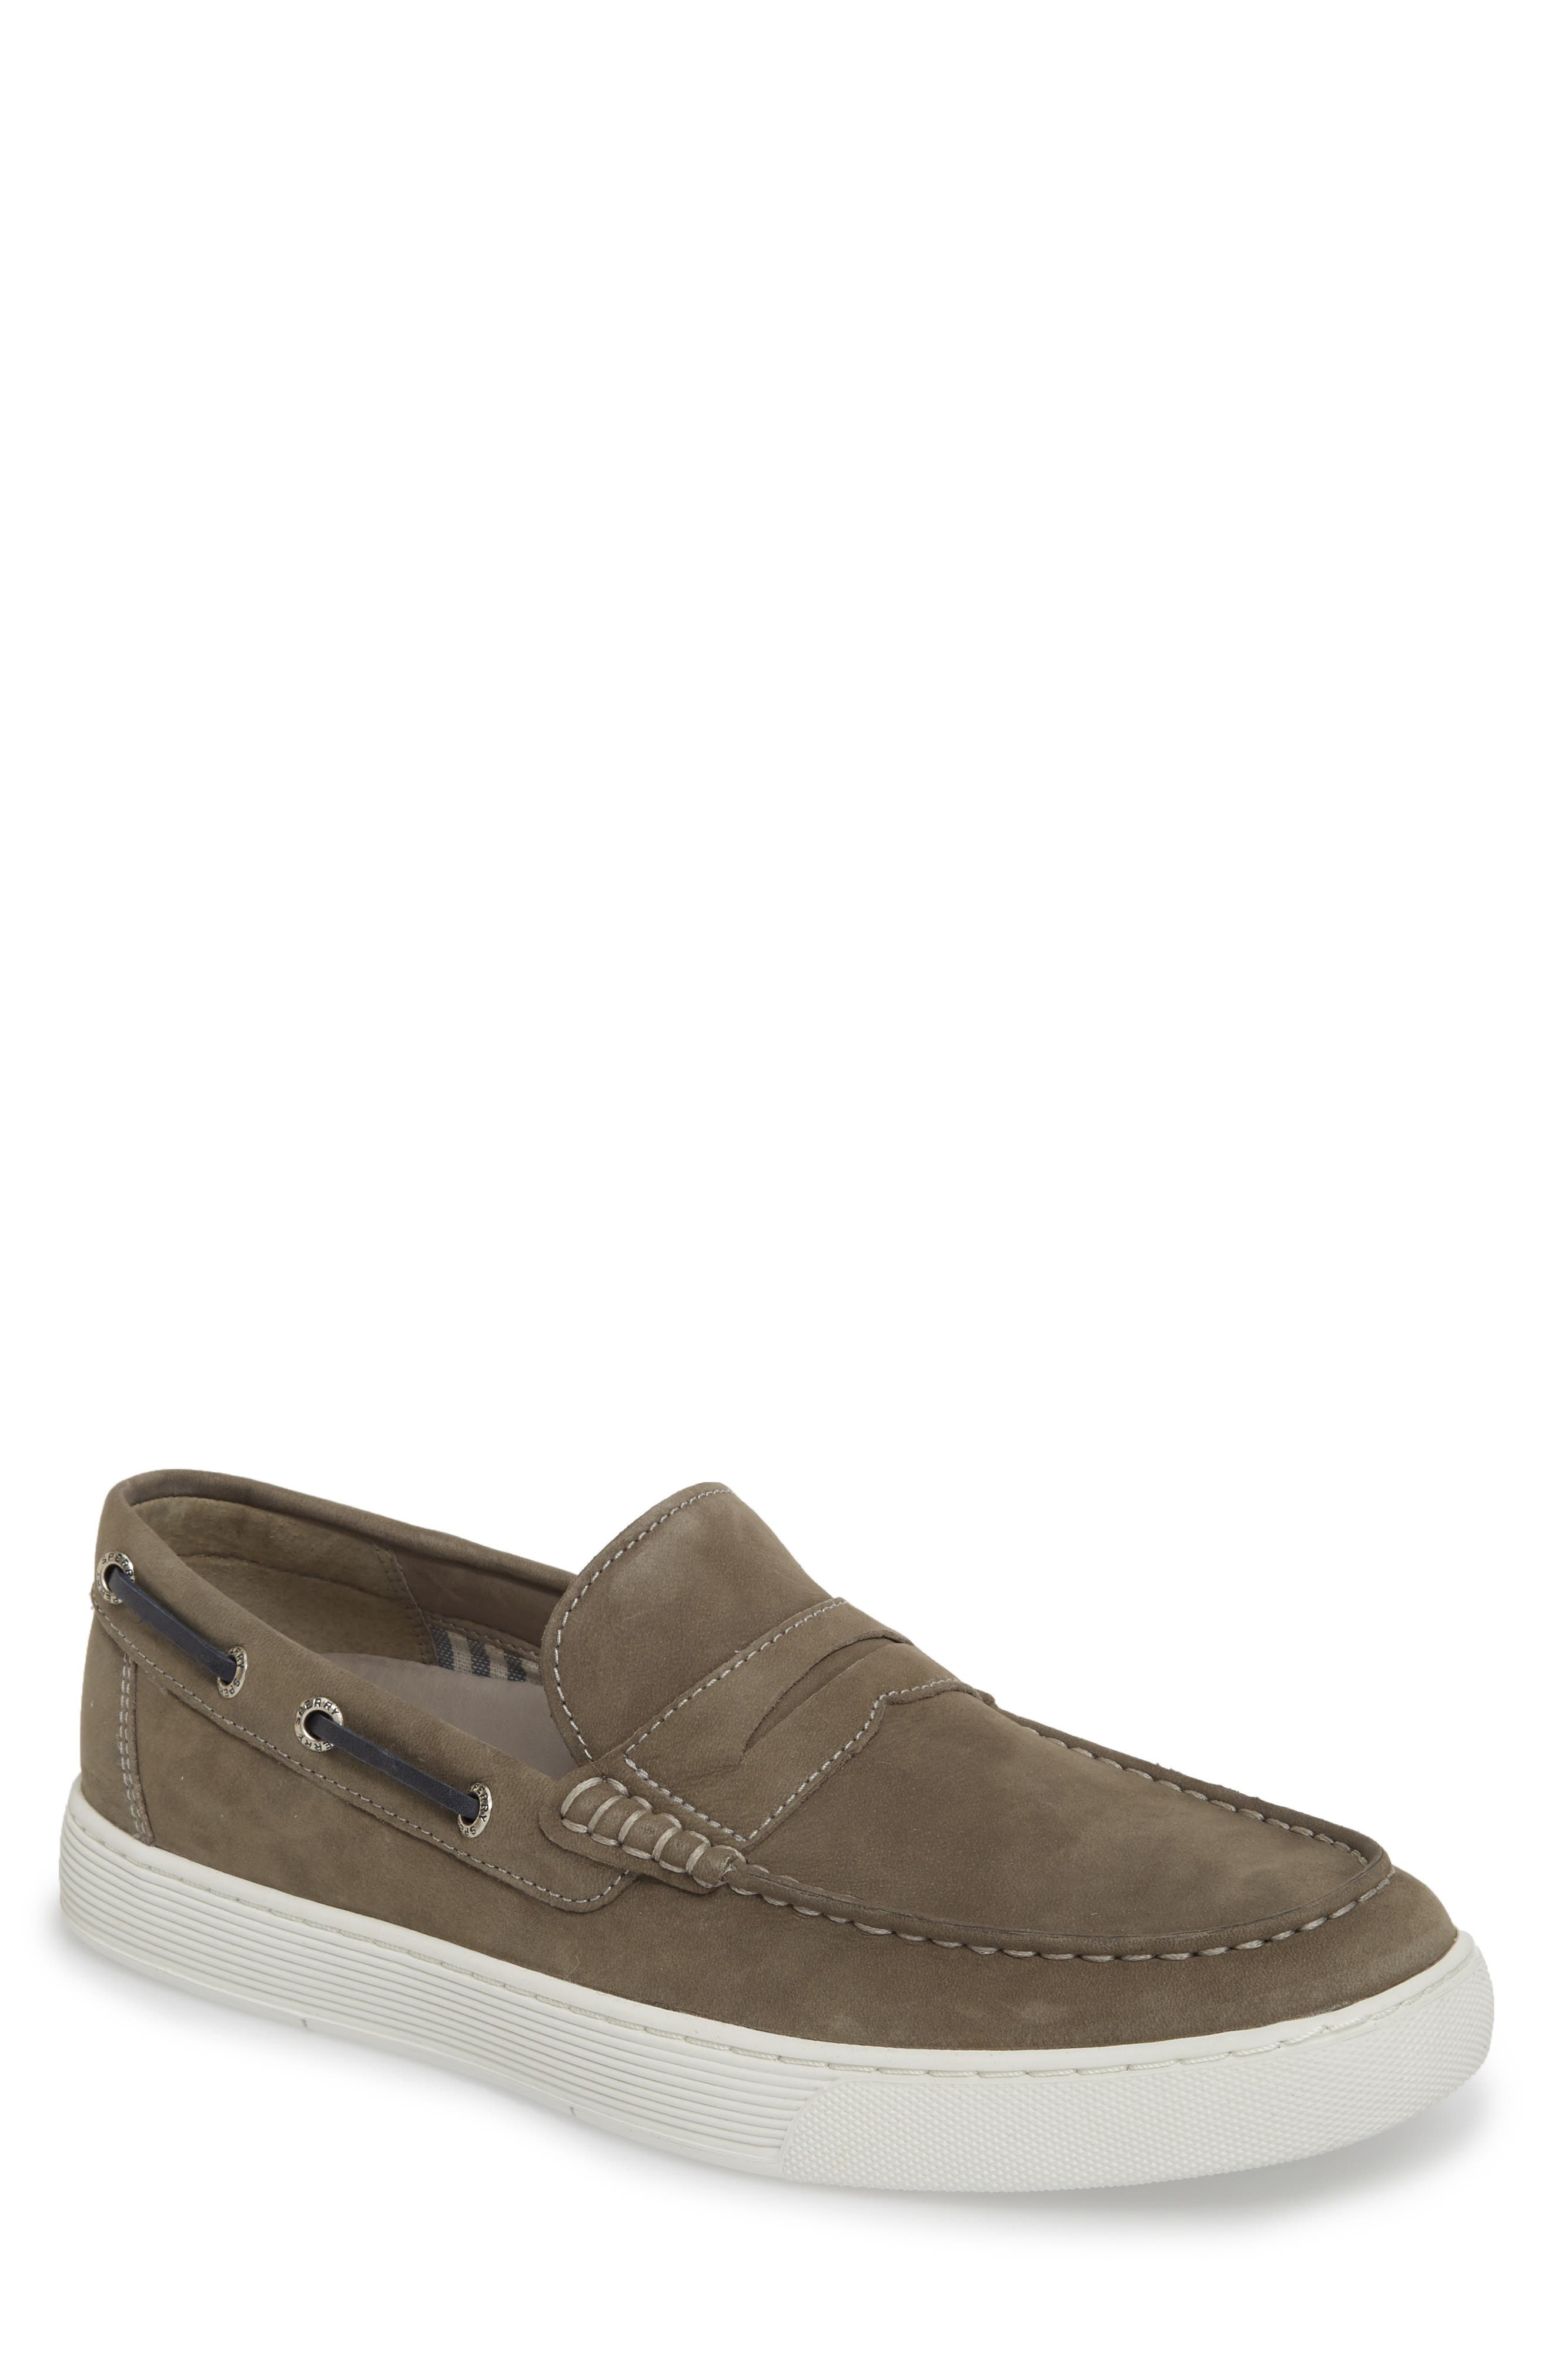 Gold Cup Penny Loafer,                             Main thumbnail 1, color,                             020